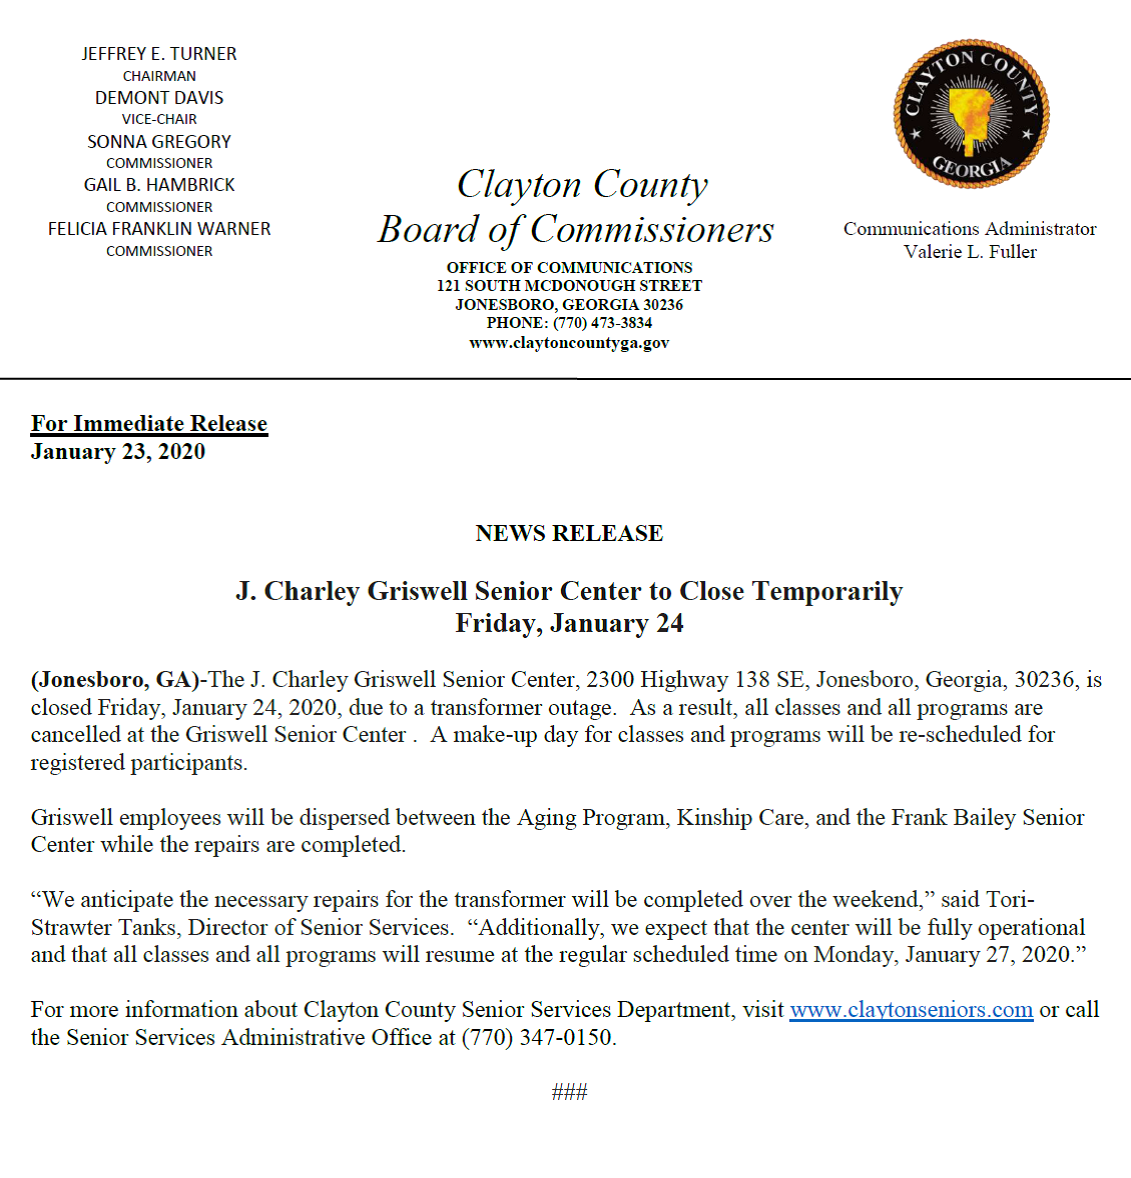 News Release Griswell Senior Center to Close Temporarily for Friday, January 24, 2020